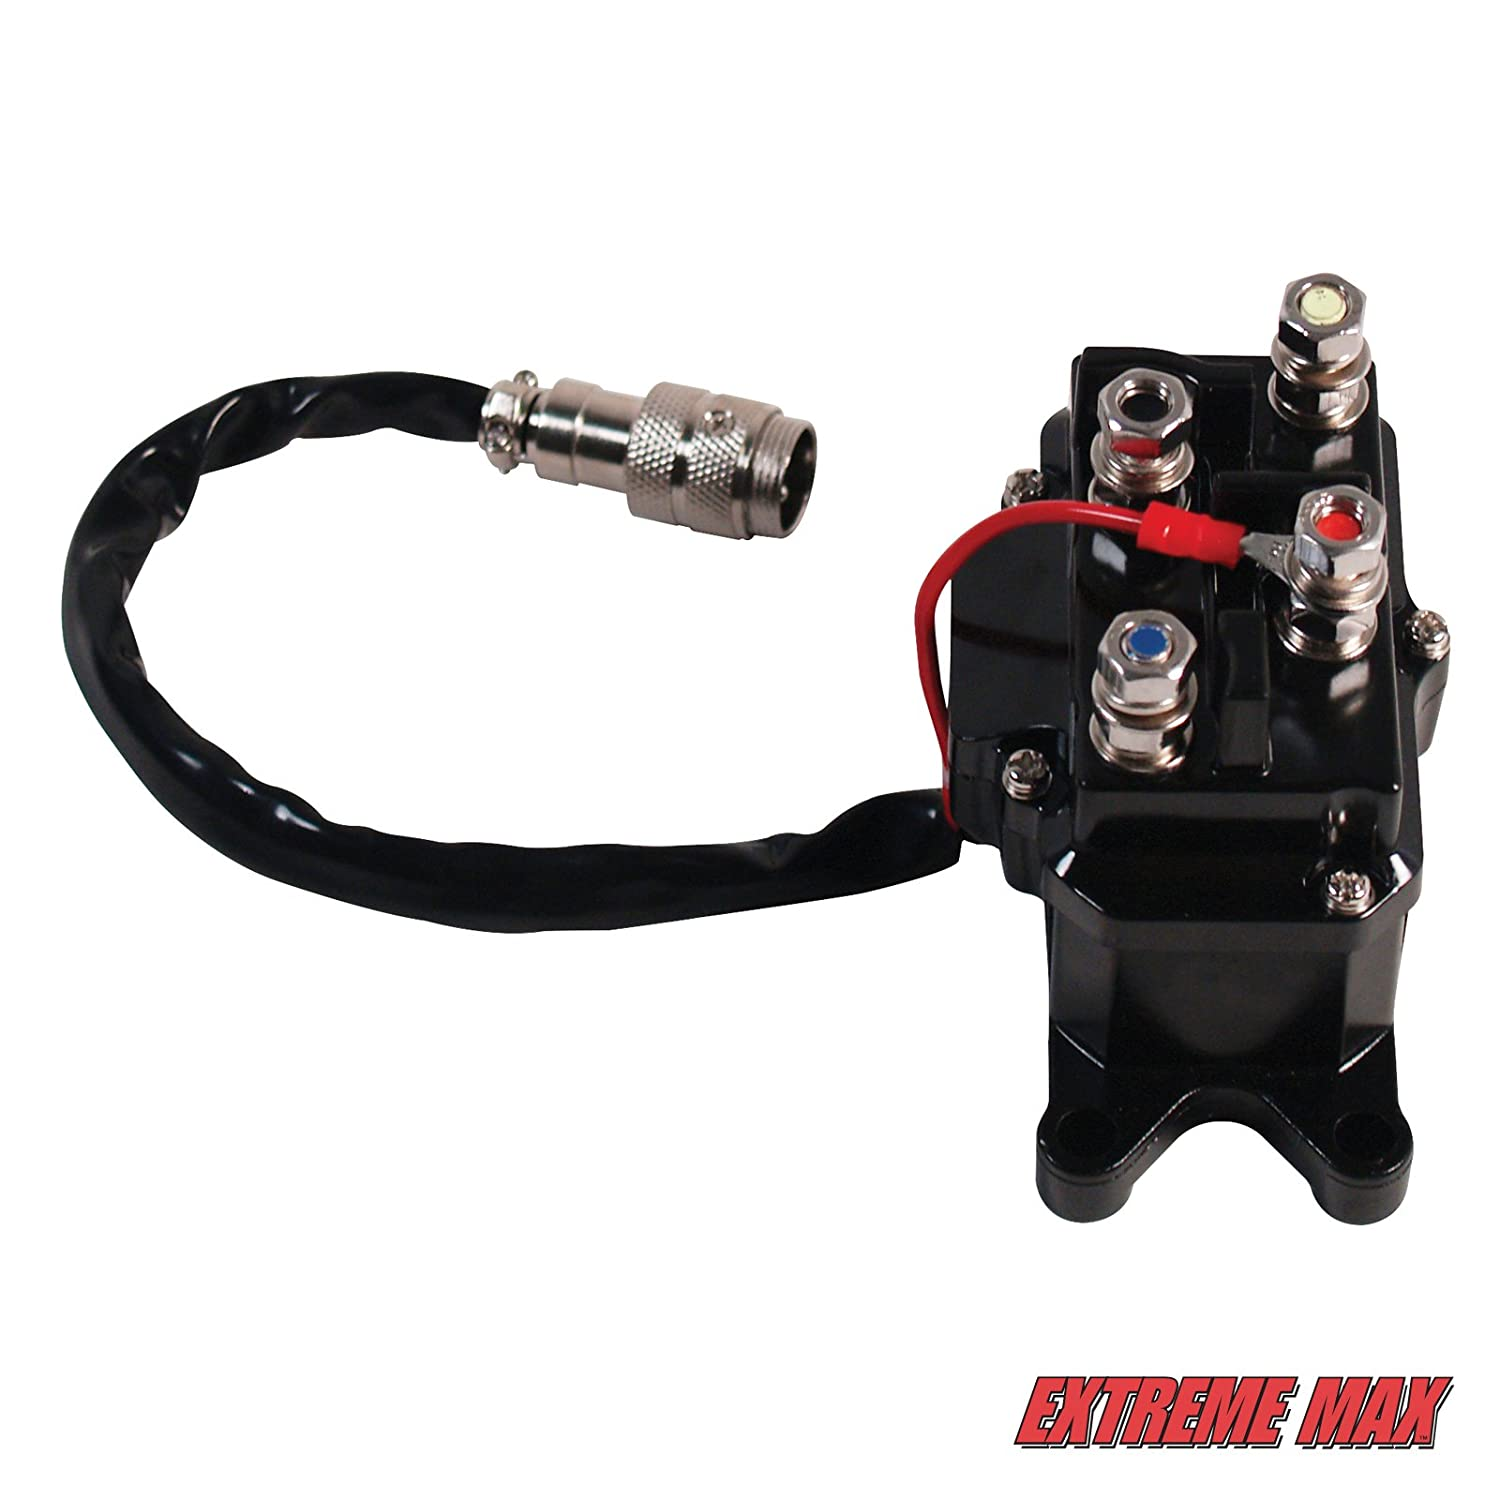 Relay for 2000-3600 lb ATV Winches Extreme Max 5600.3004 Universal Replacement Contactor